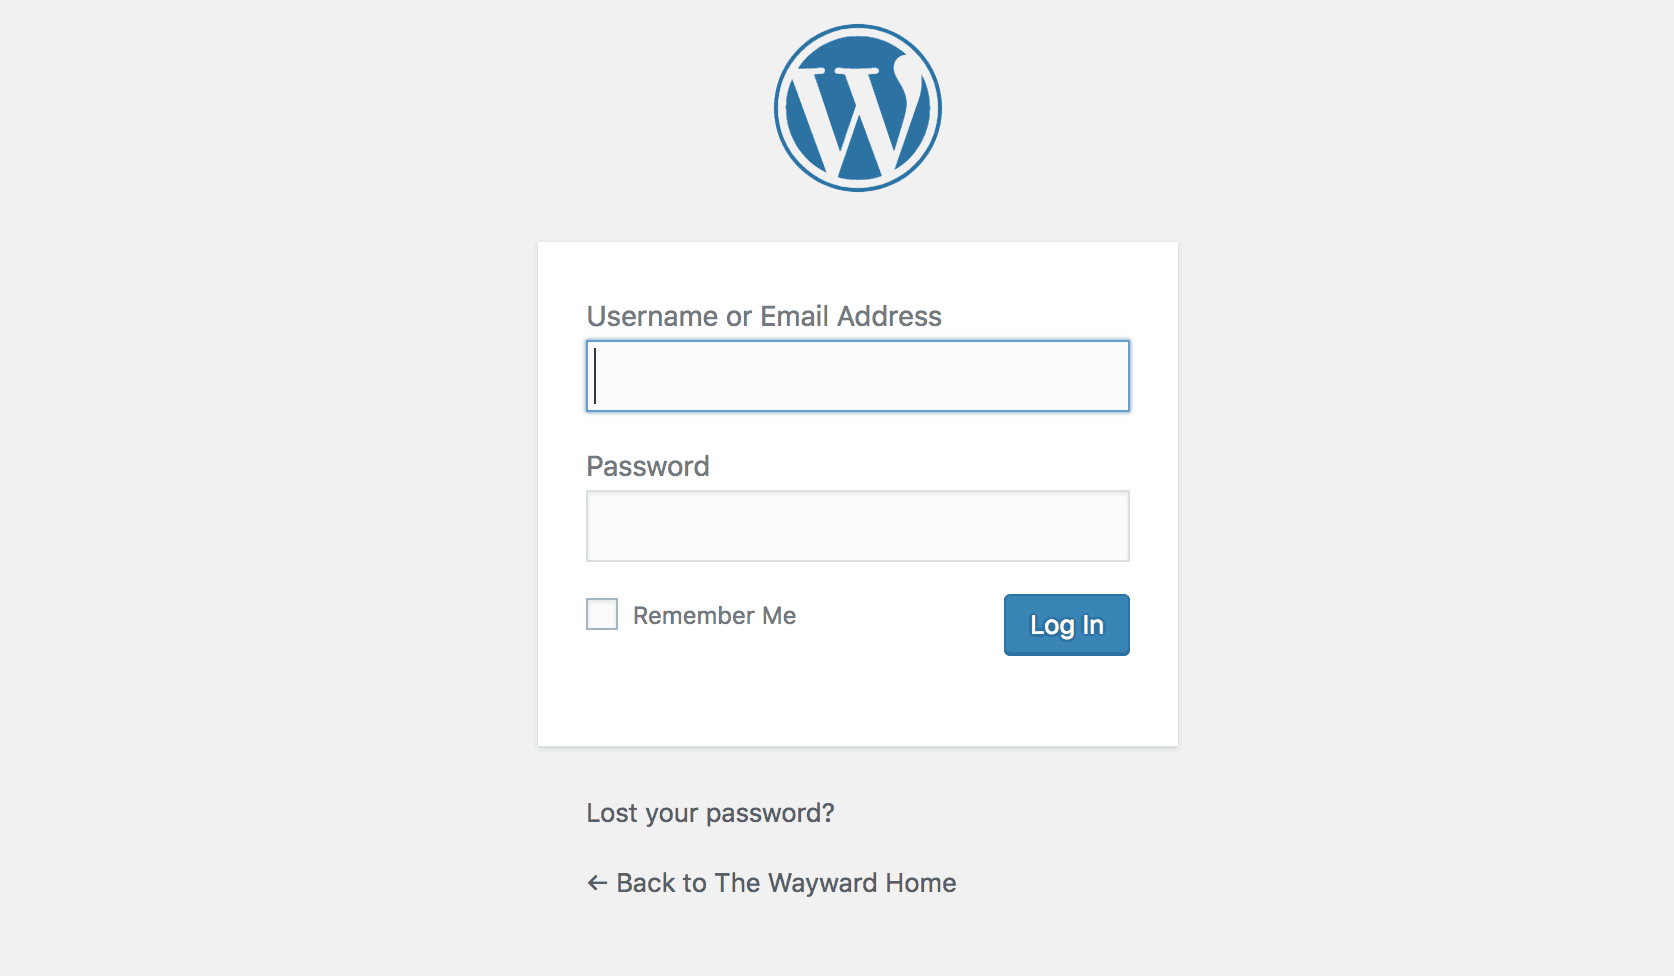 Wordpress blog log-in screen